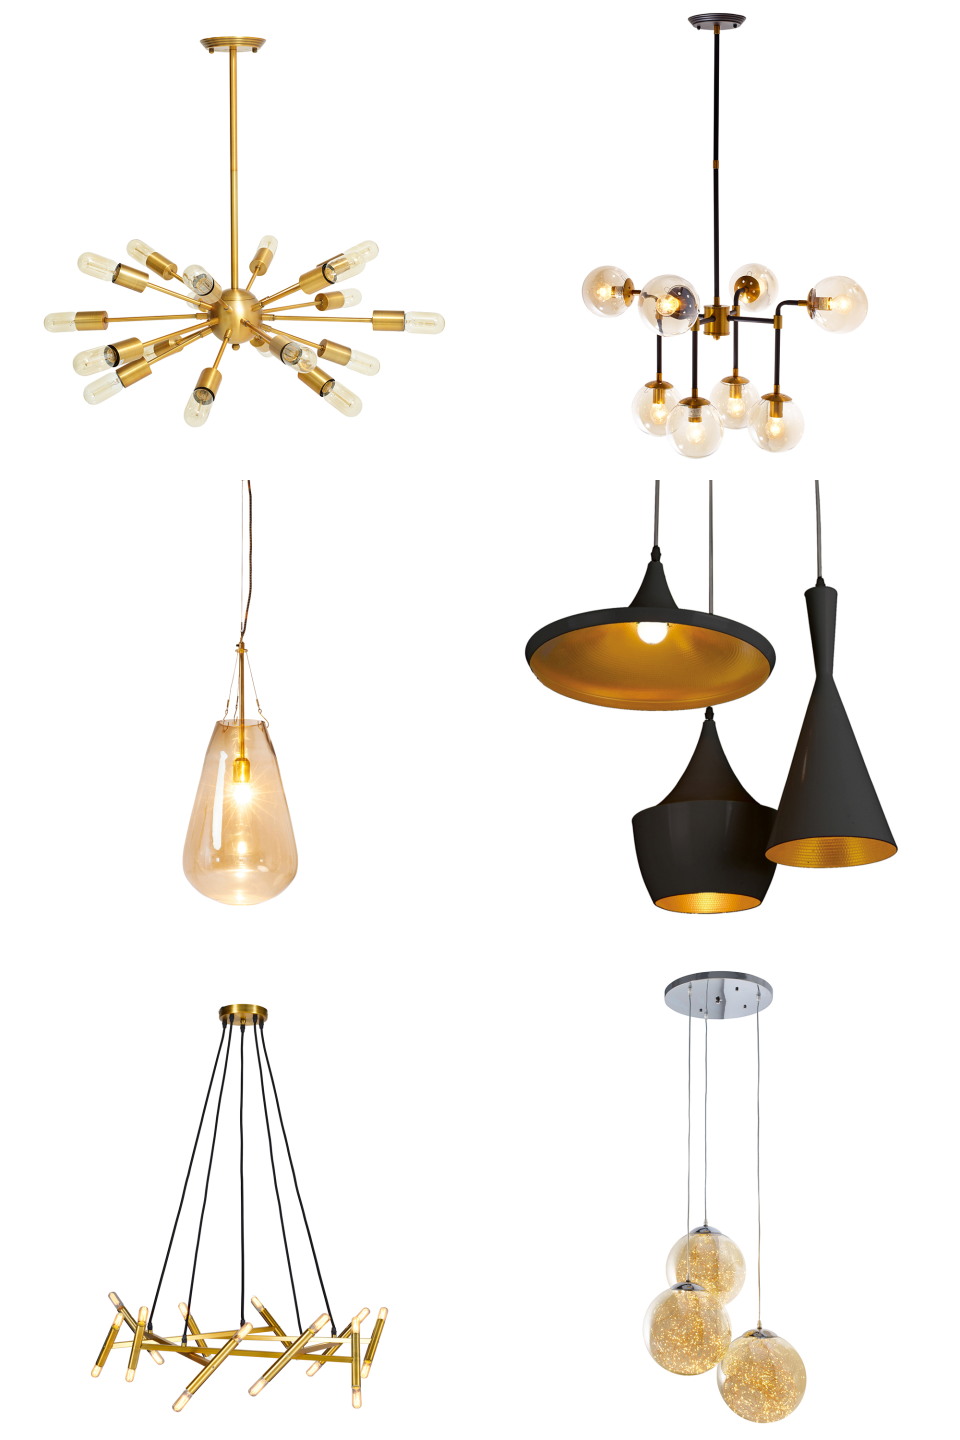 Pendant Lighting Dwell S Home Furnishing Ideas